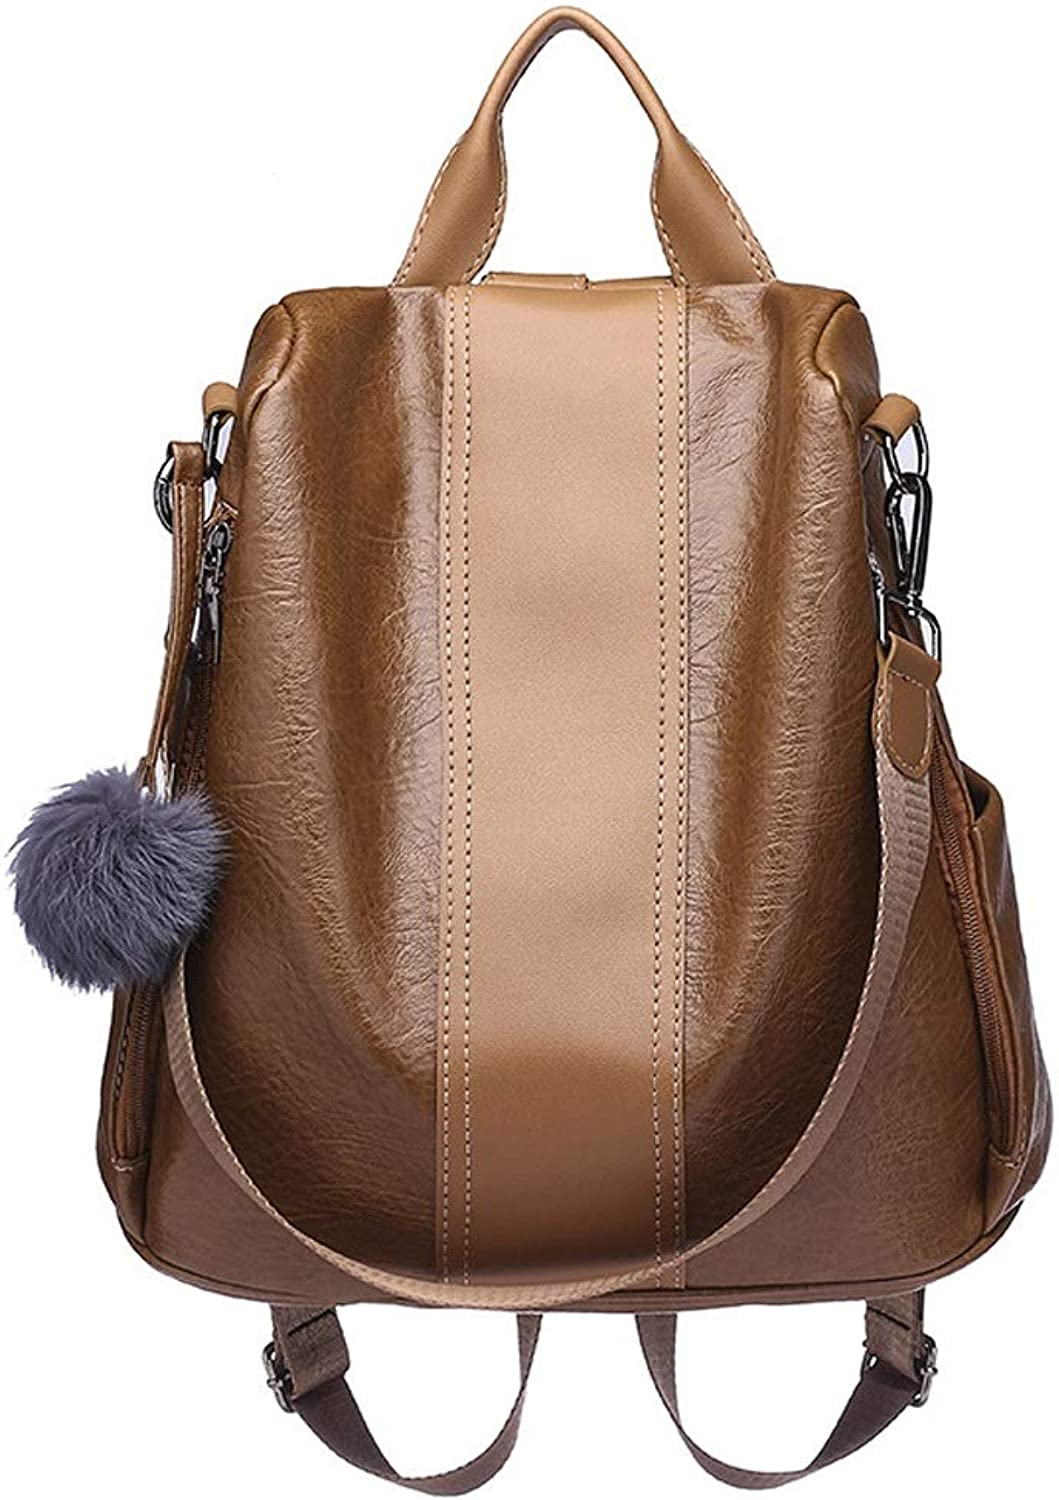 BAOBAOG Backpack Lady AntiTheft Bag Fashion Pu Waterproof Backpack Large Capacity Female Student Casual Bag (color   Brown, Size   OneSize)